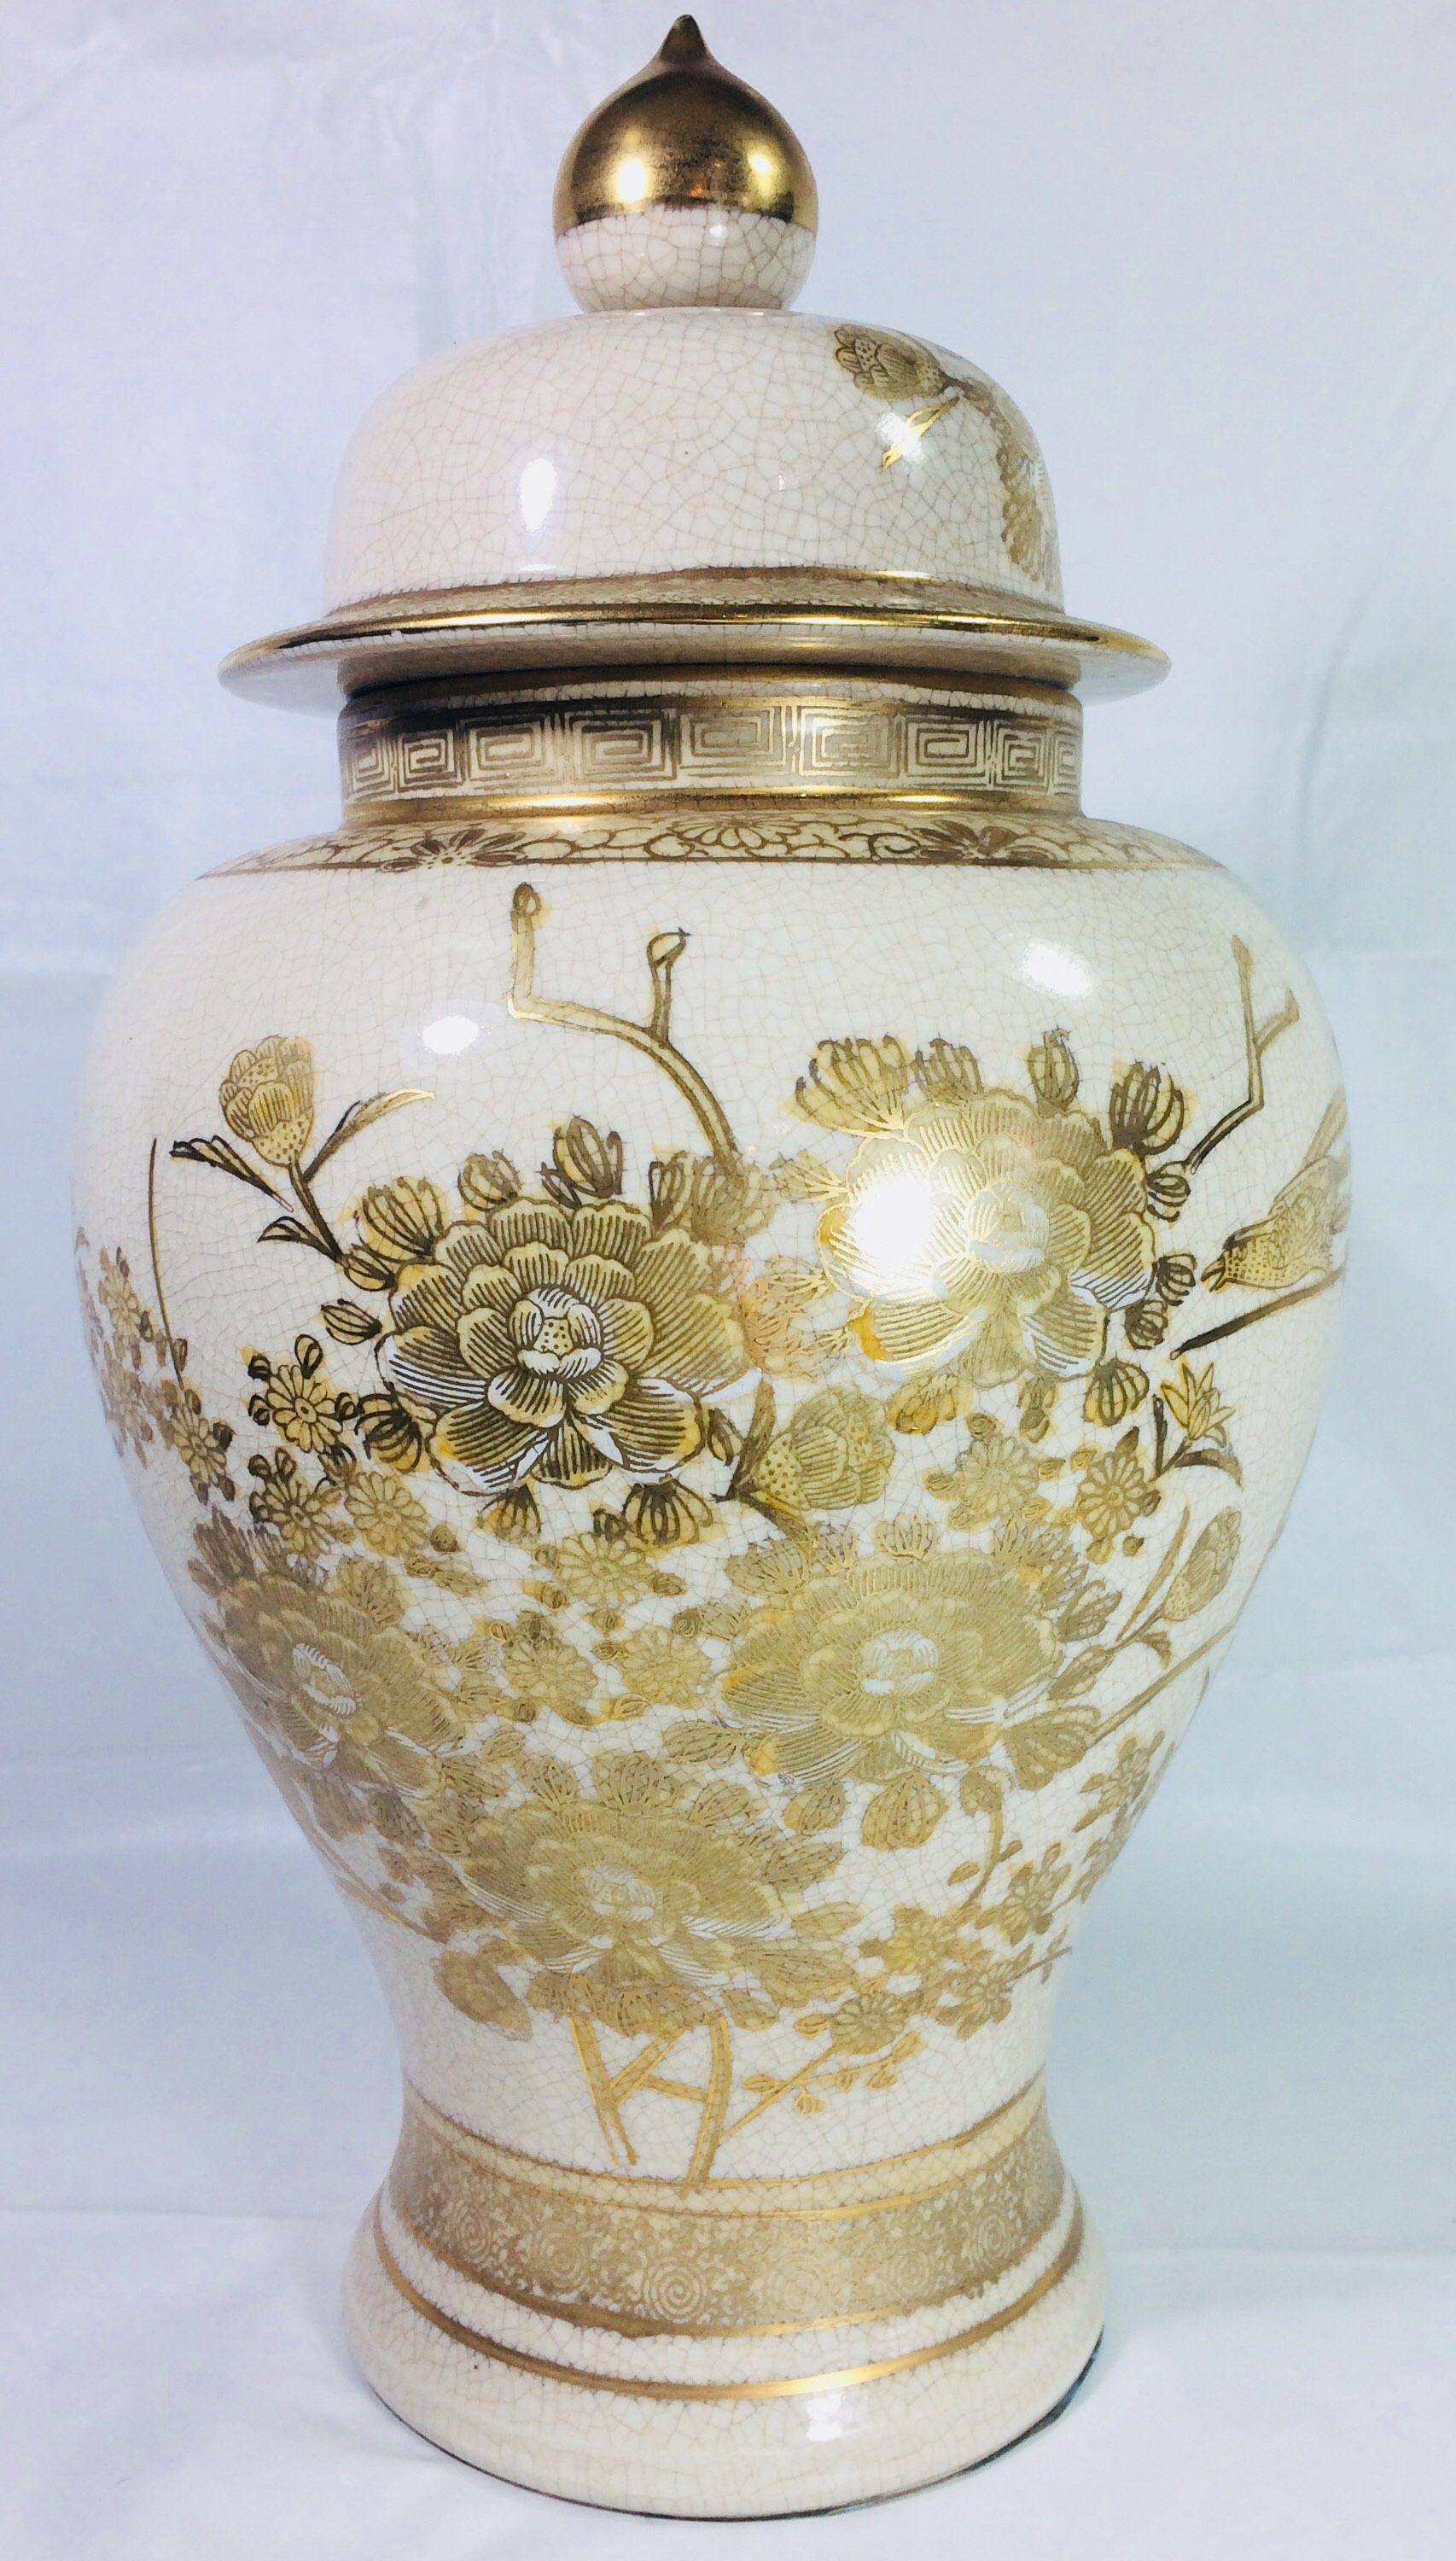 Decorative Urn Interesting Oriental Urnvasehand Painted Asianoriental Decorgilded Urn Review